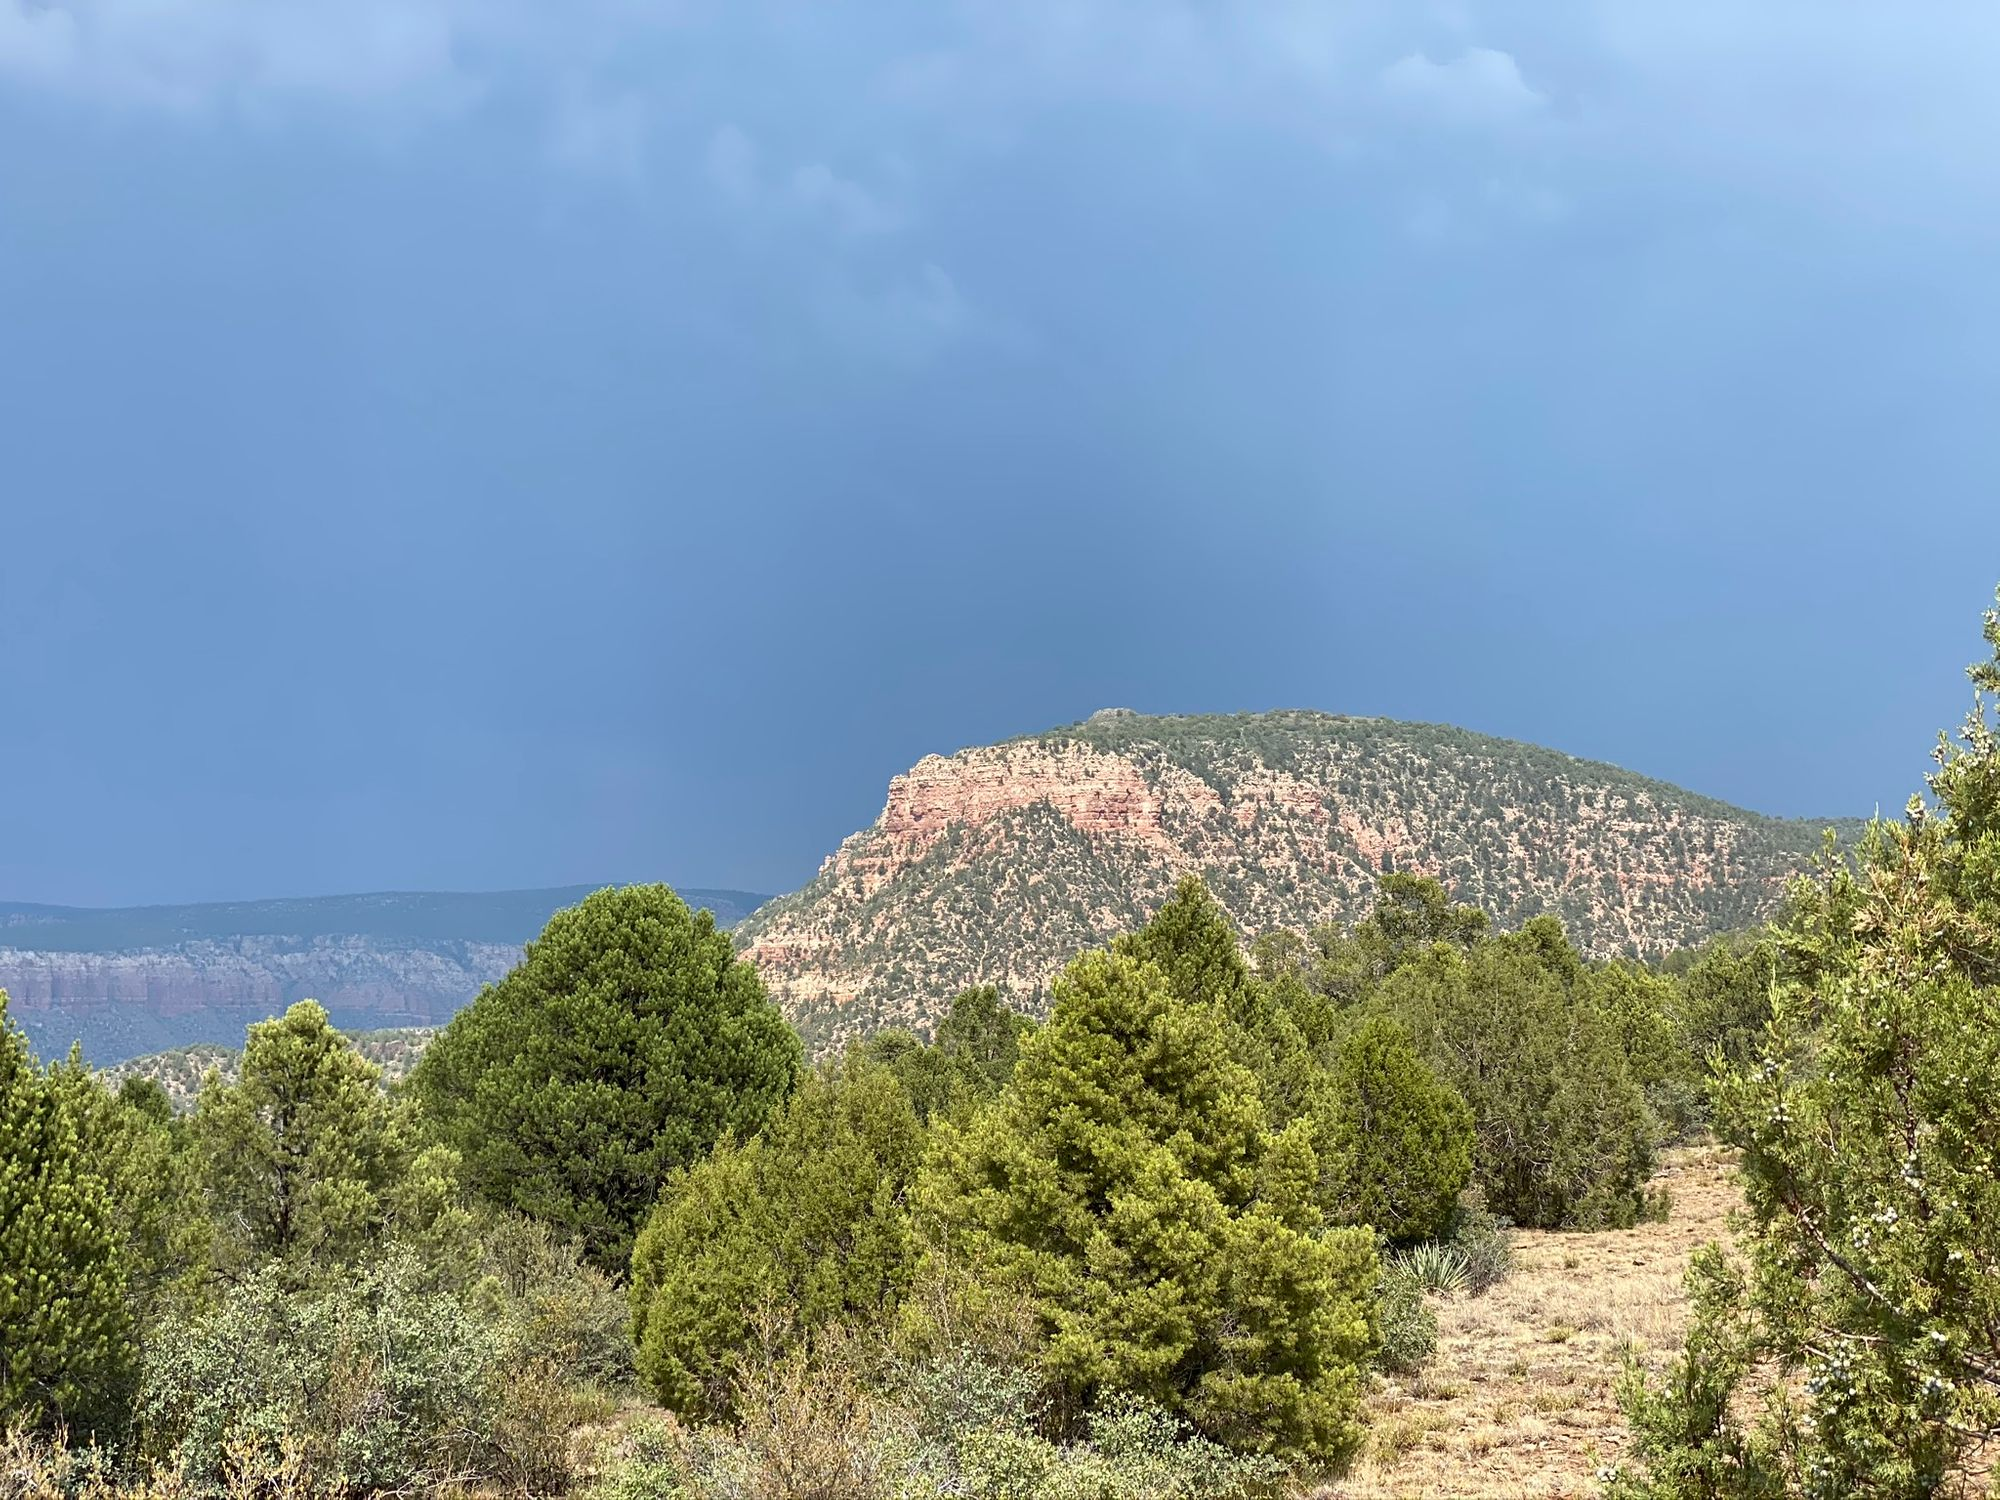 Bob Bear Trailhead is beautiful and has amazing views of the red rock